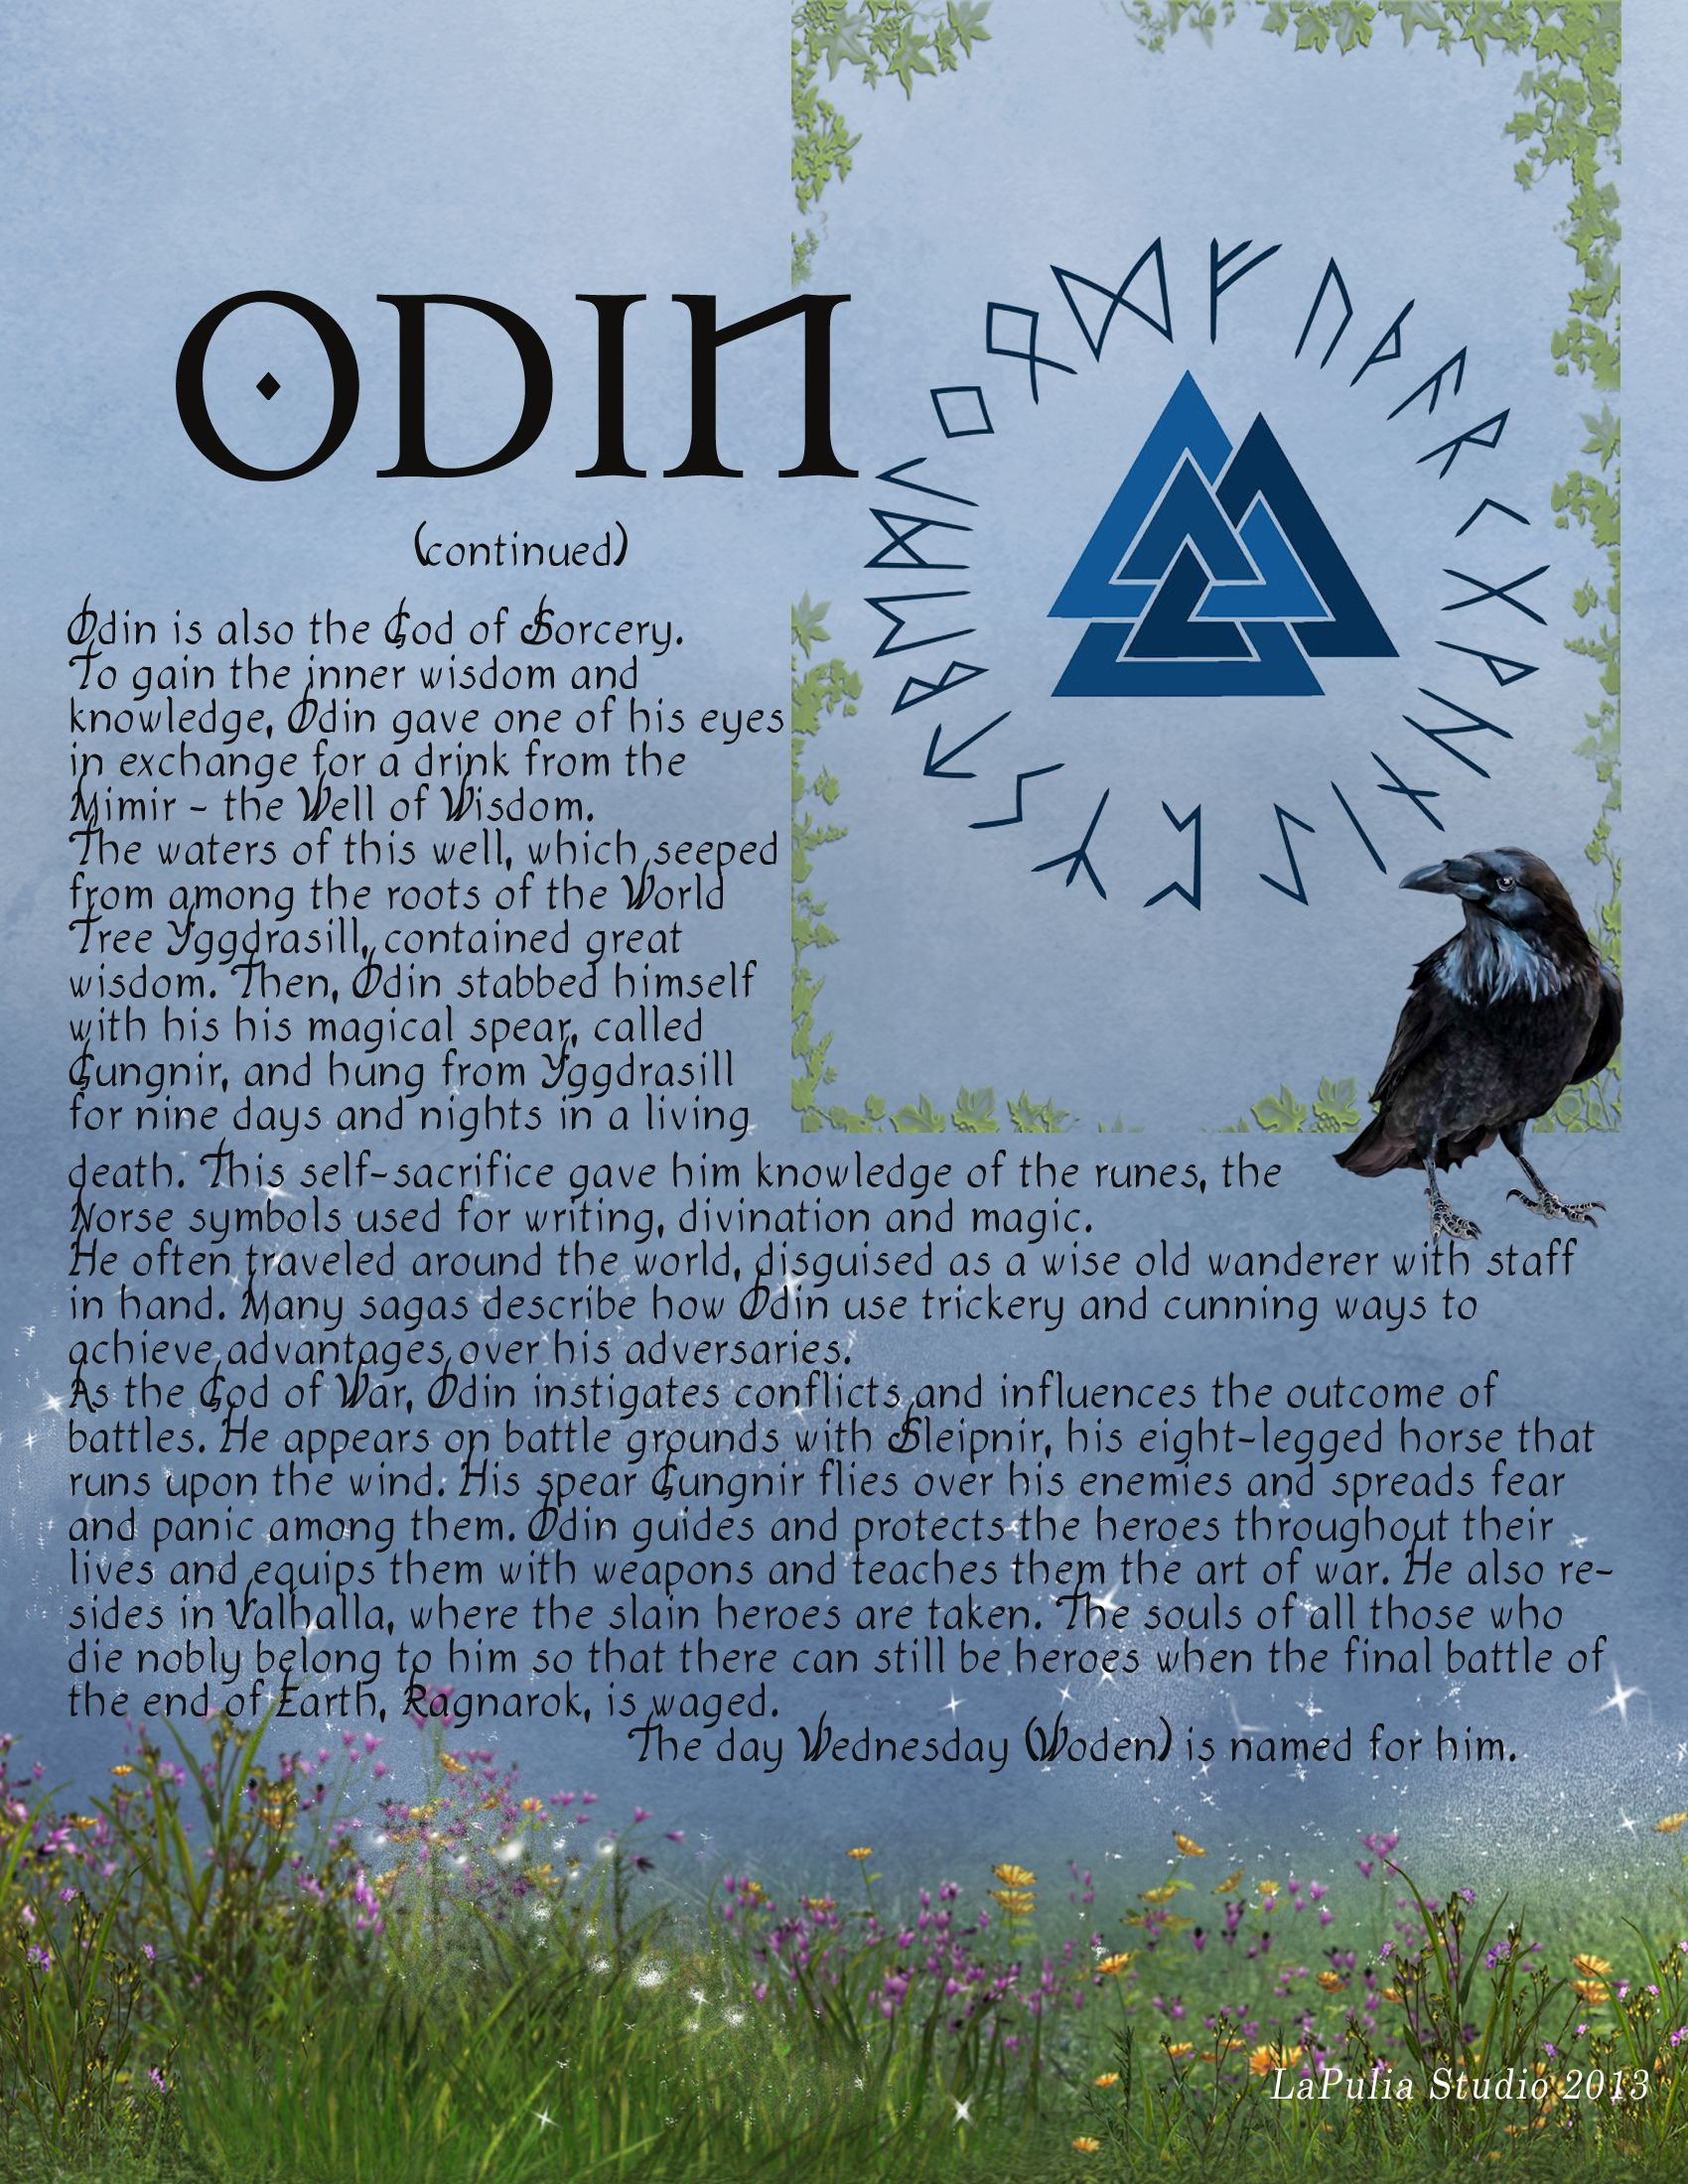 A description of Odin, The leader of the Norse Pantheon (page 2)